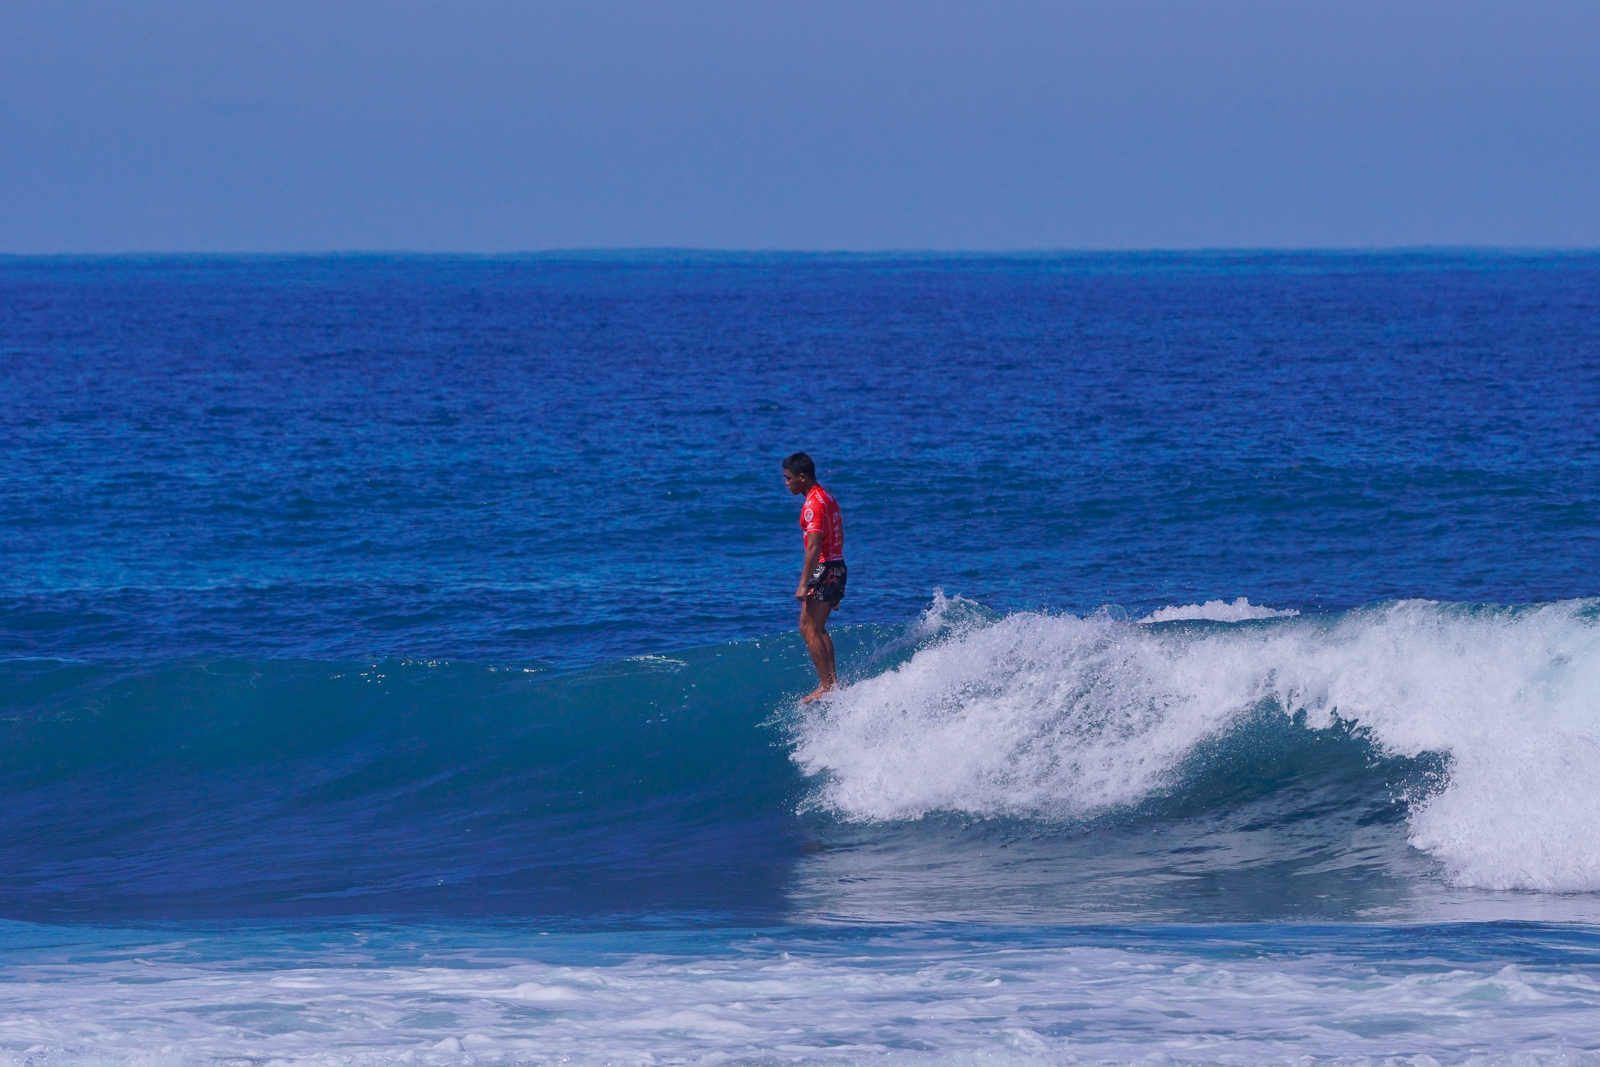 LA UNION - gaps-sabuero-photography-surf-9718.jpg